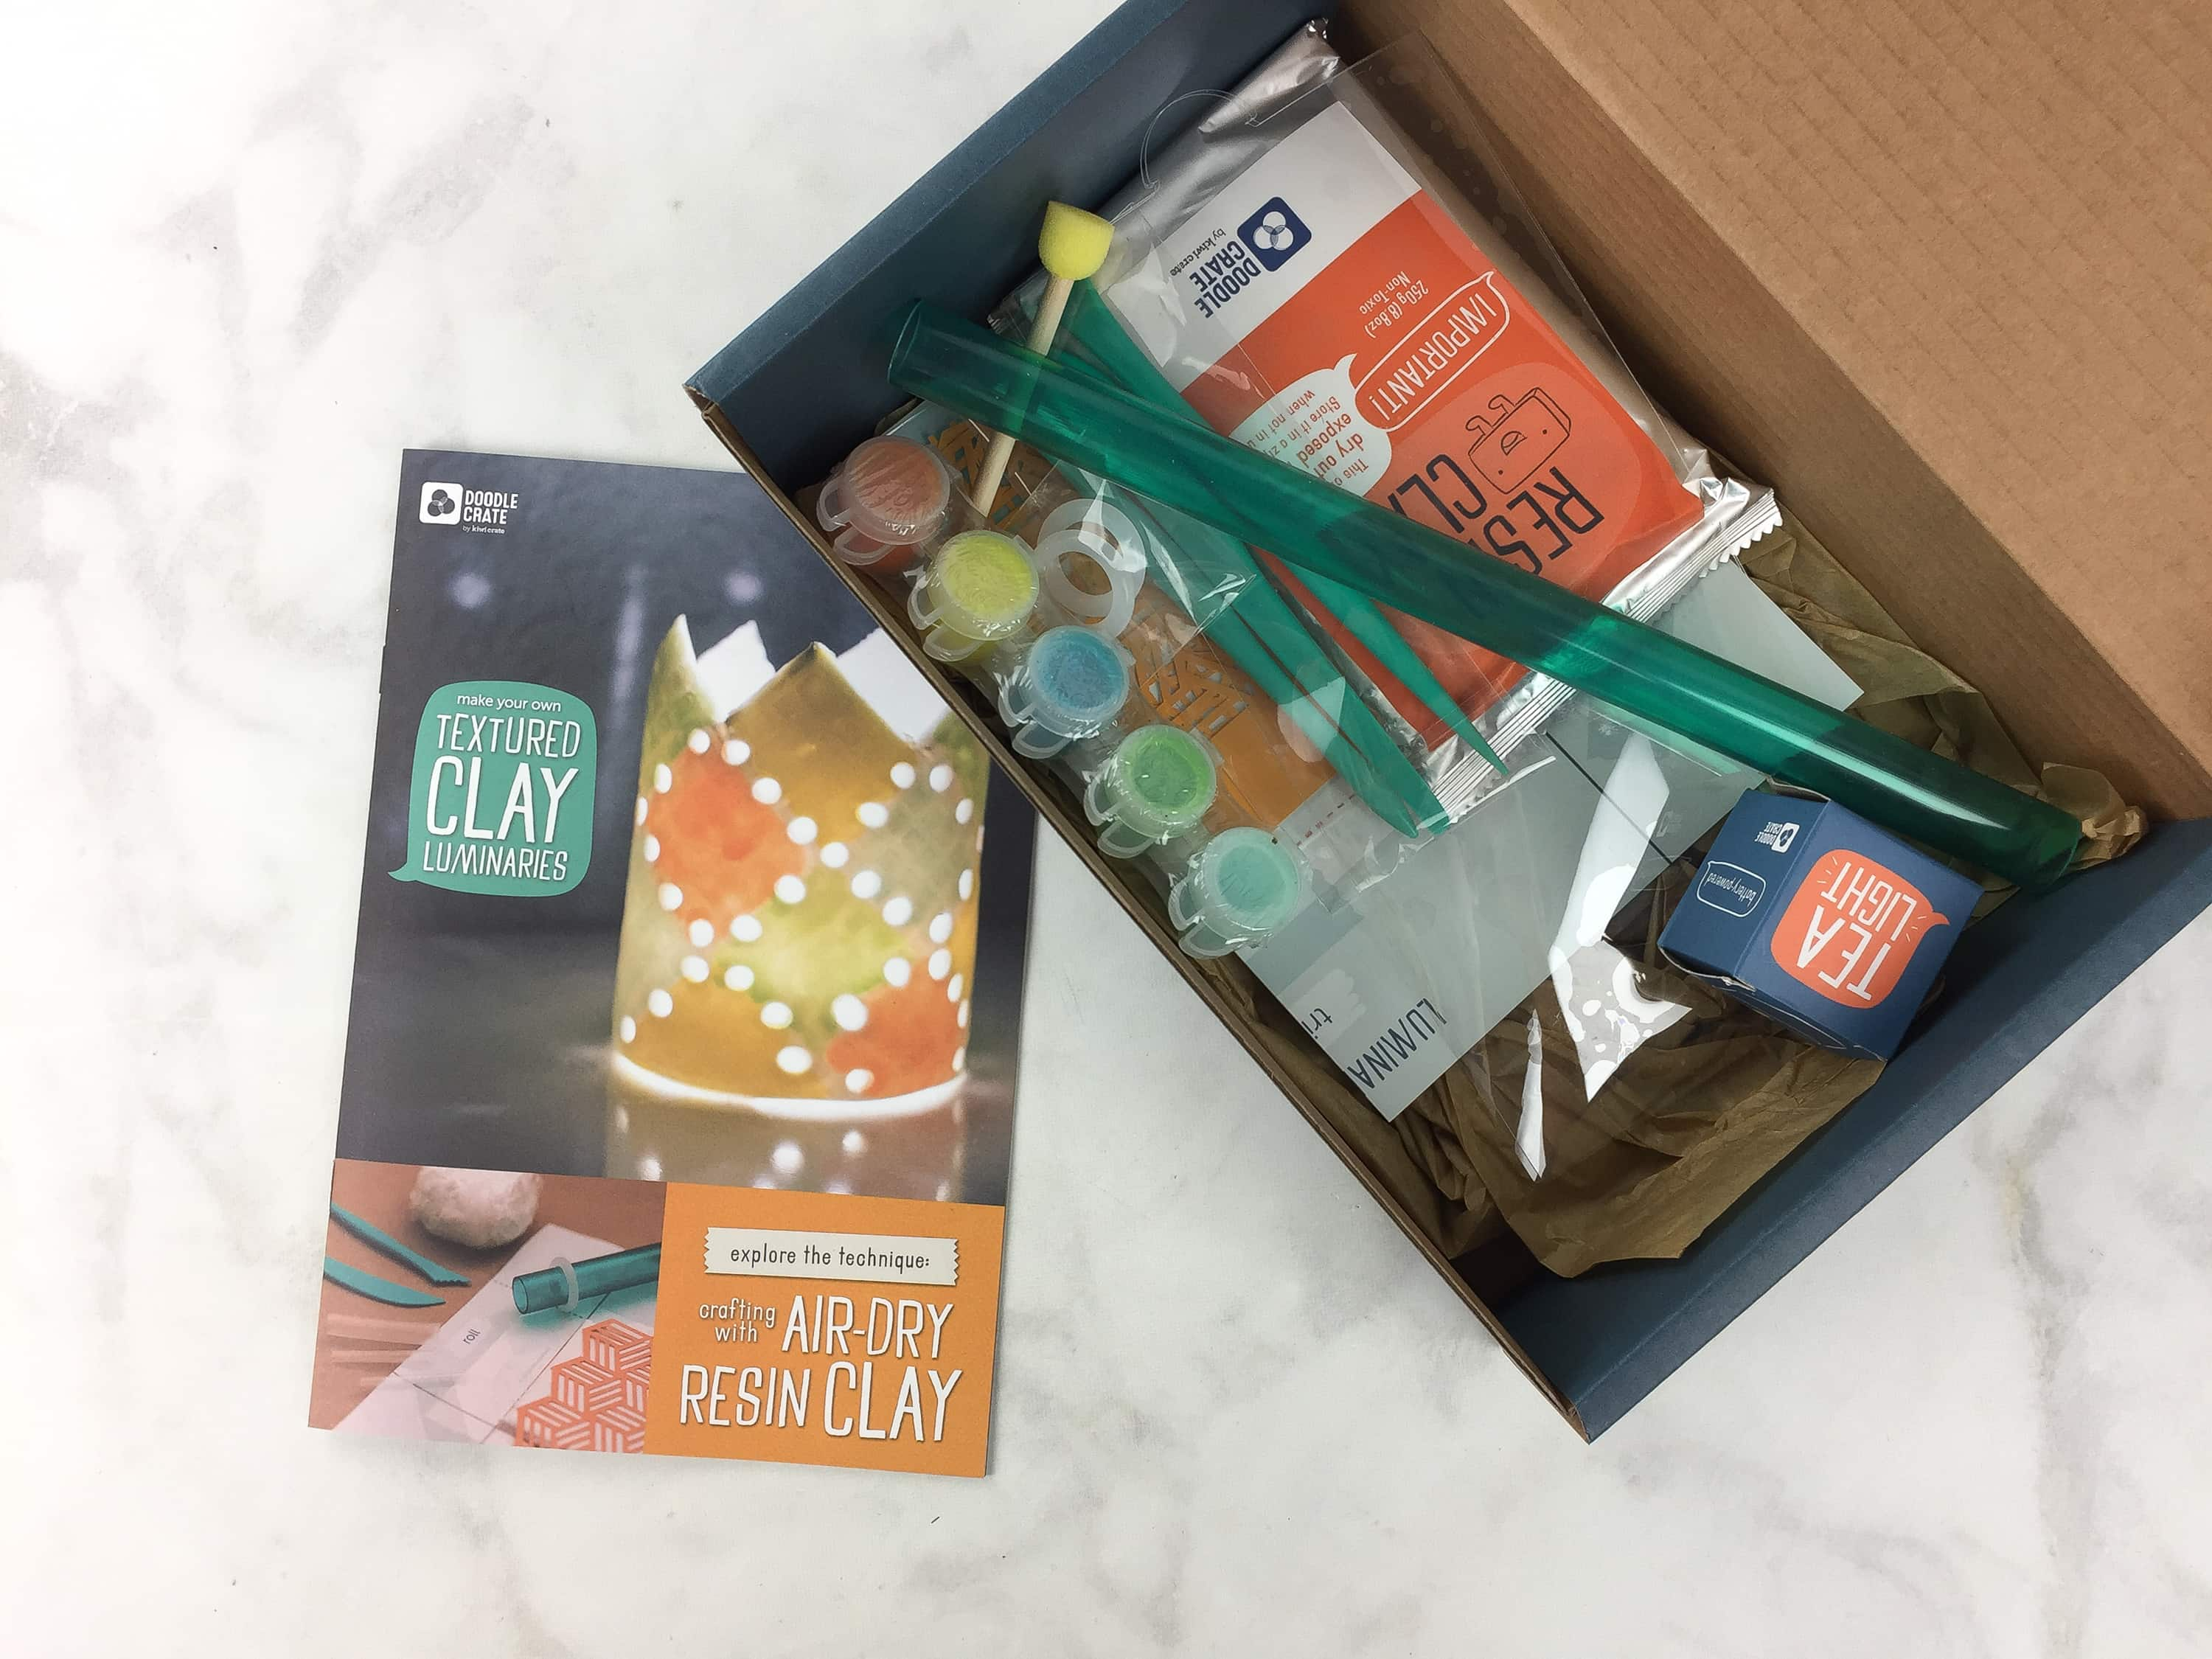 Doodle Crate March 2017 Subscription Box Review & Coupon – TEXTURE CLAY LUMINARIES